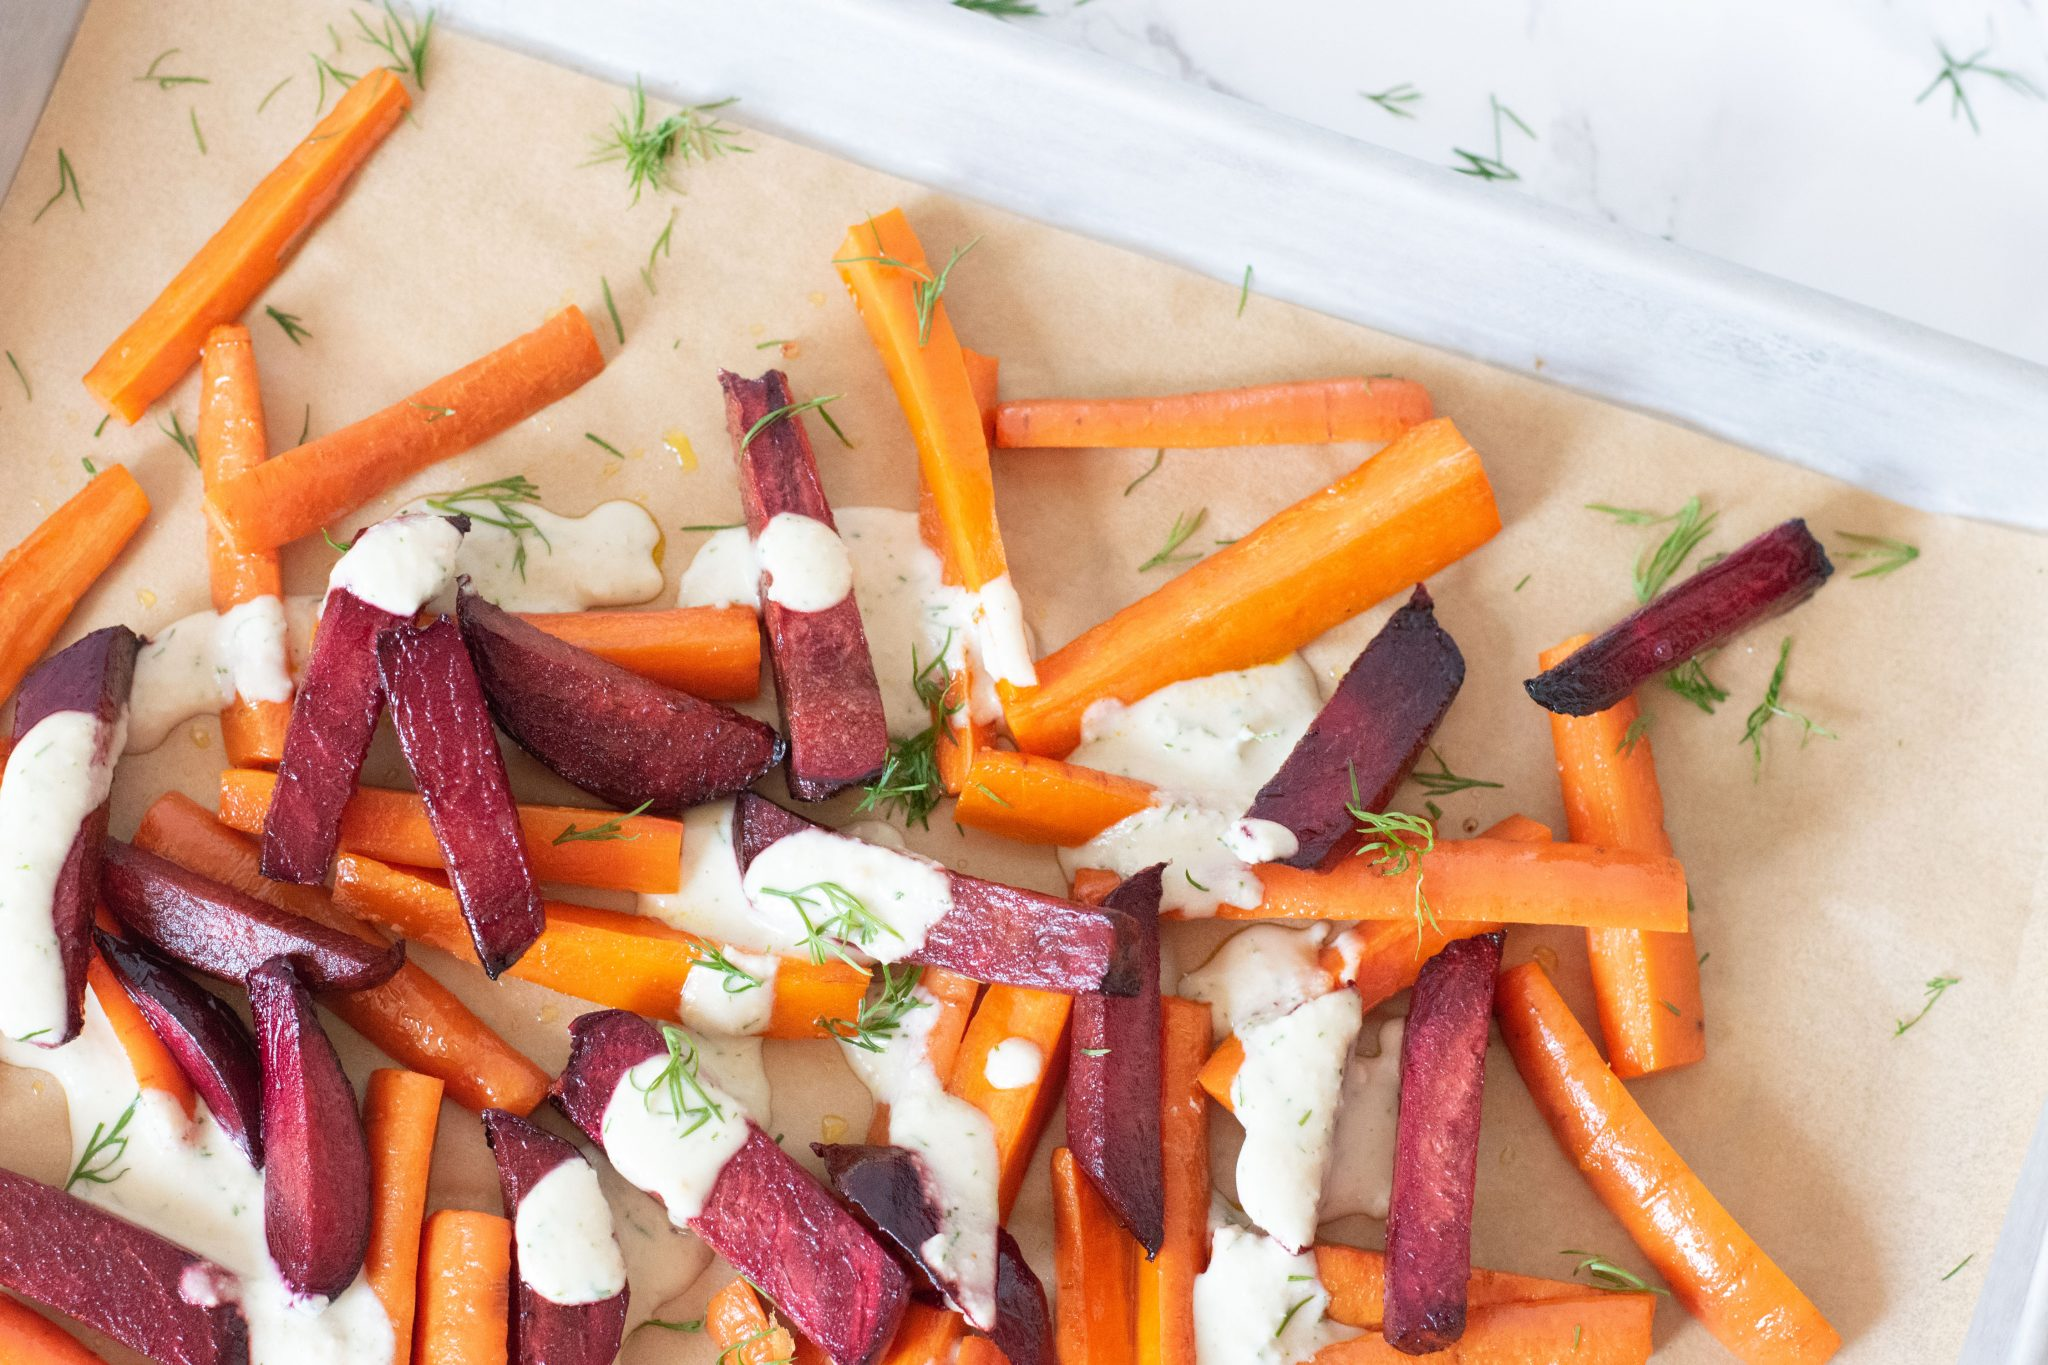 Roasted Beets and Carrots 2